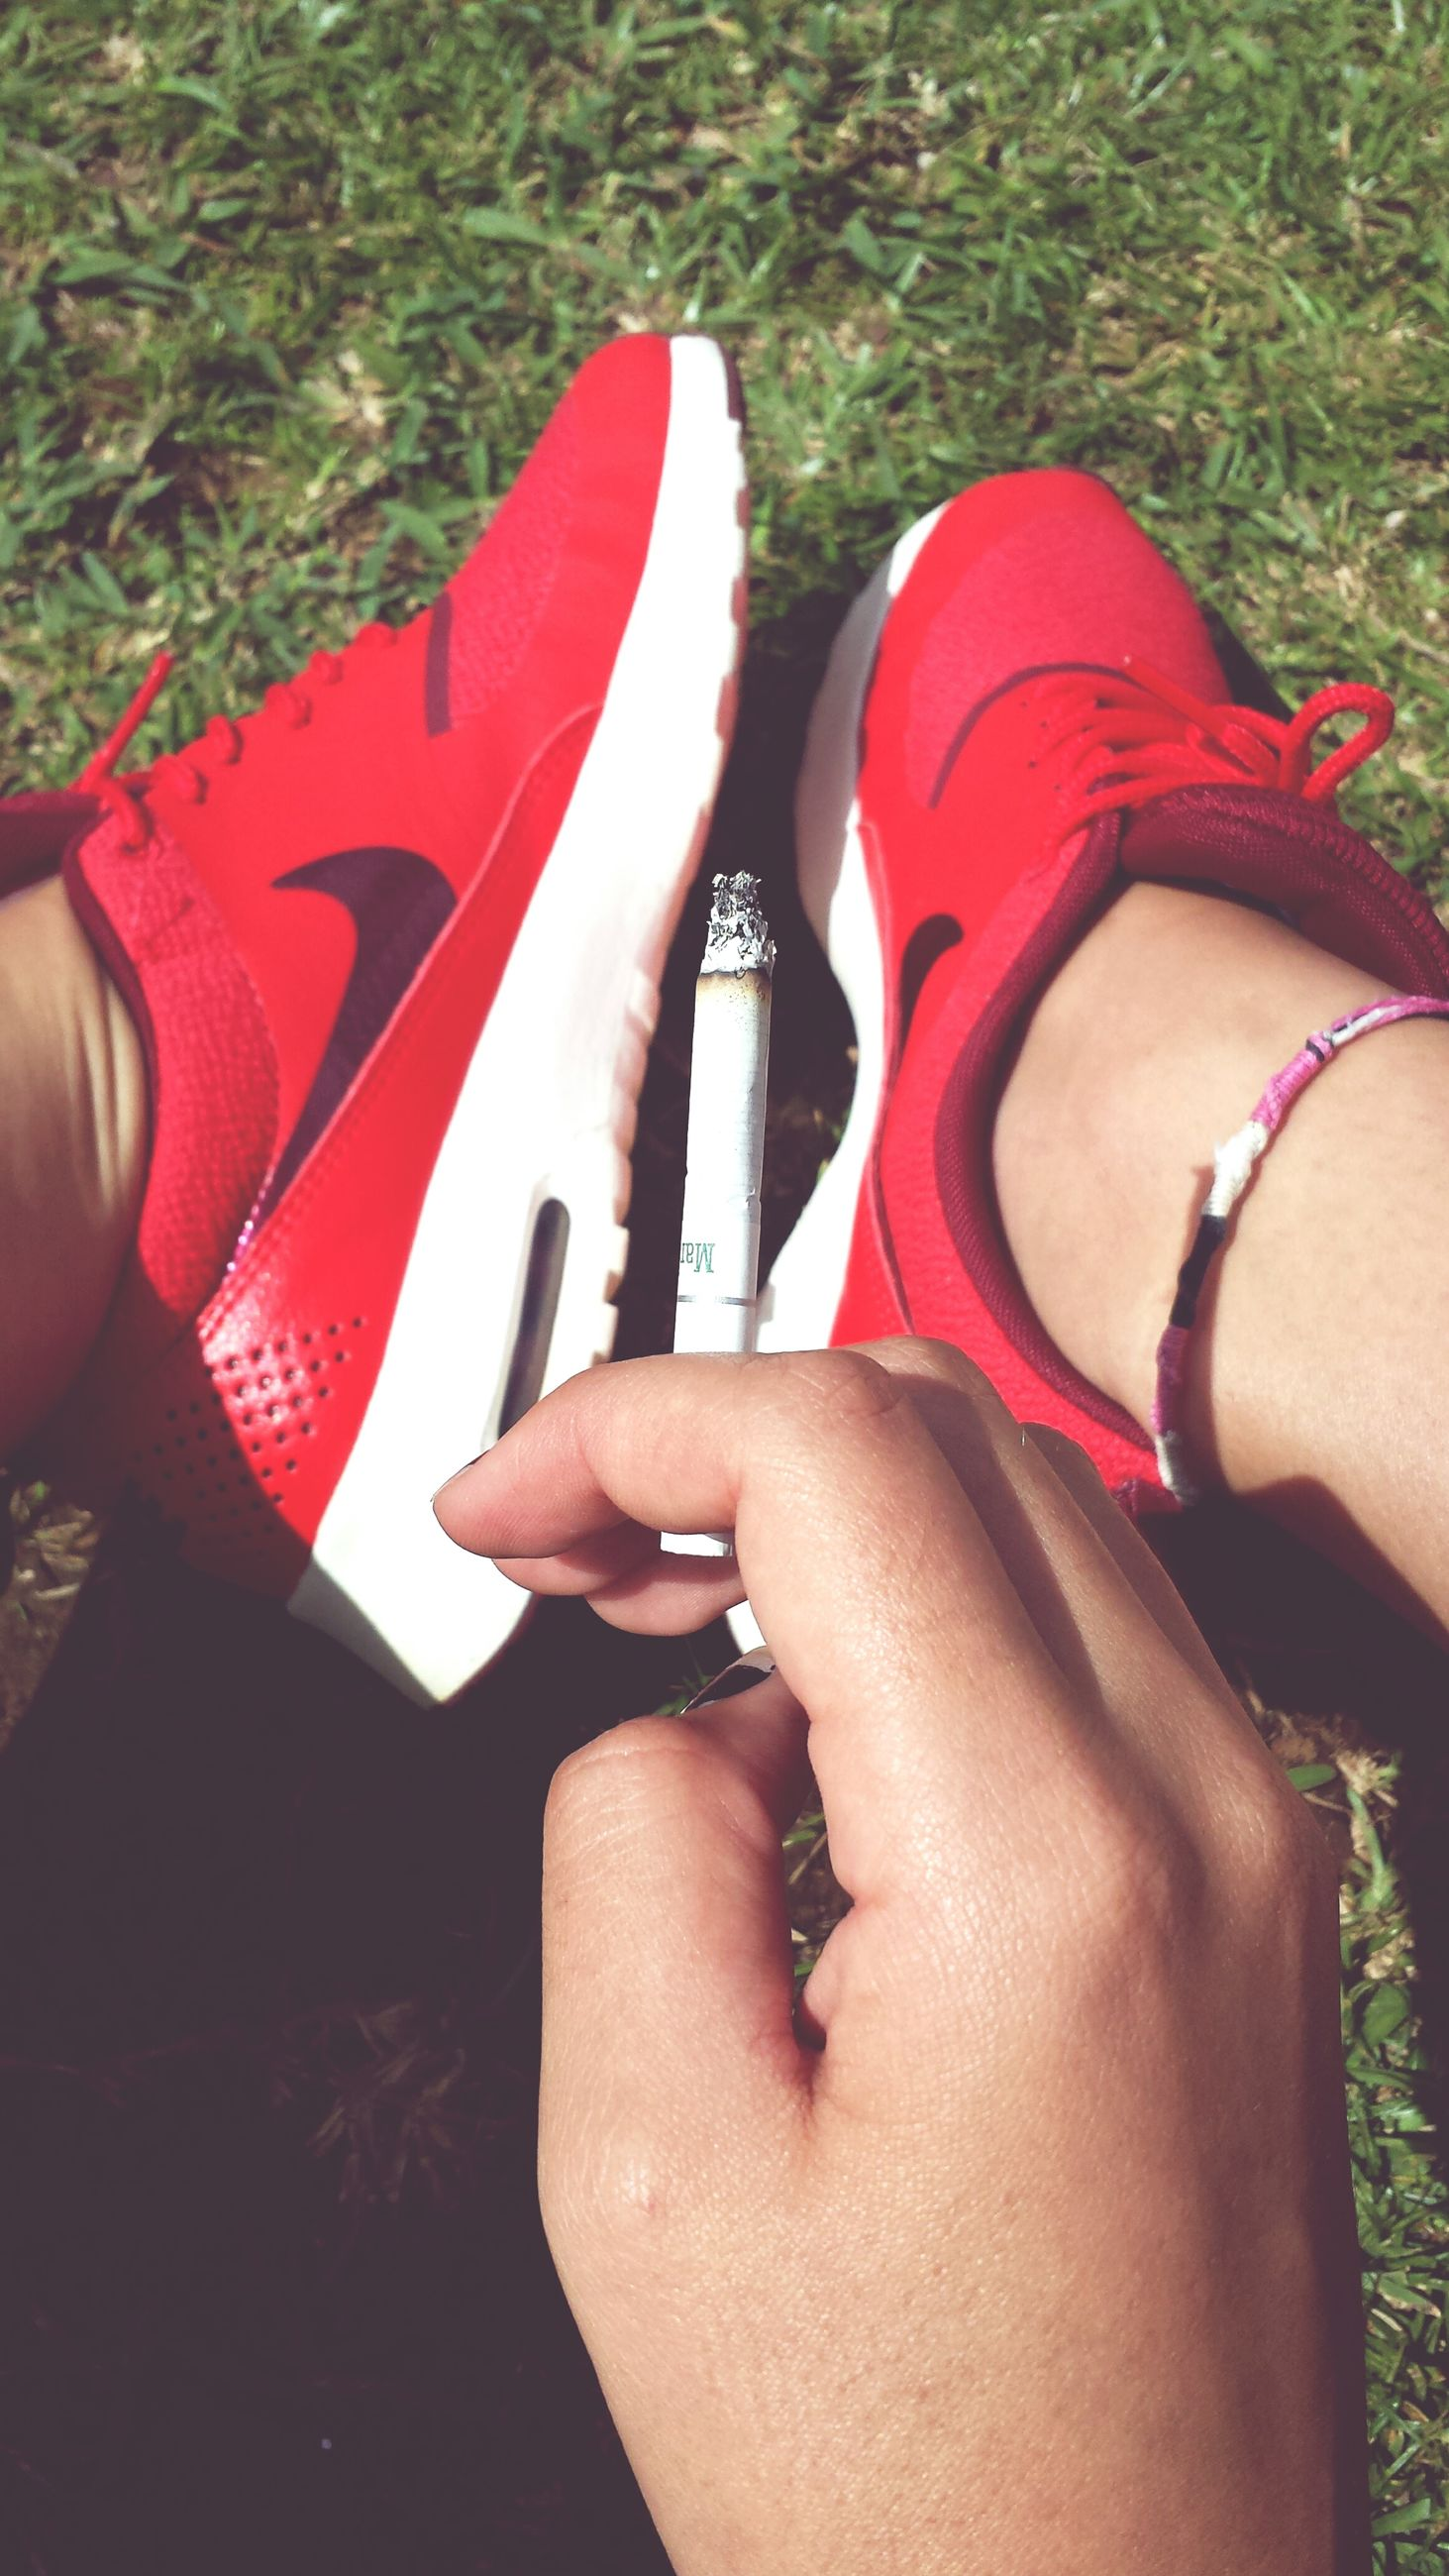 lifestyles, leisure activity, part of, person, personal perspective, low section, sitting, men, relaxation, lying down, red, cropped, resting, shoe, outdoors